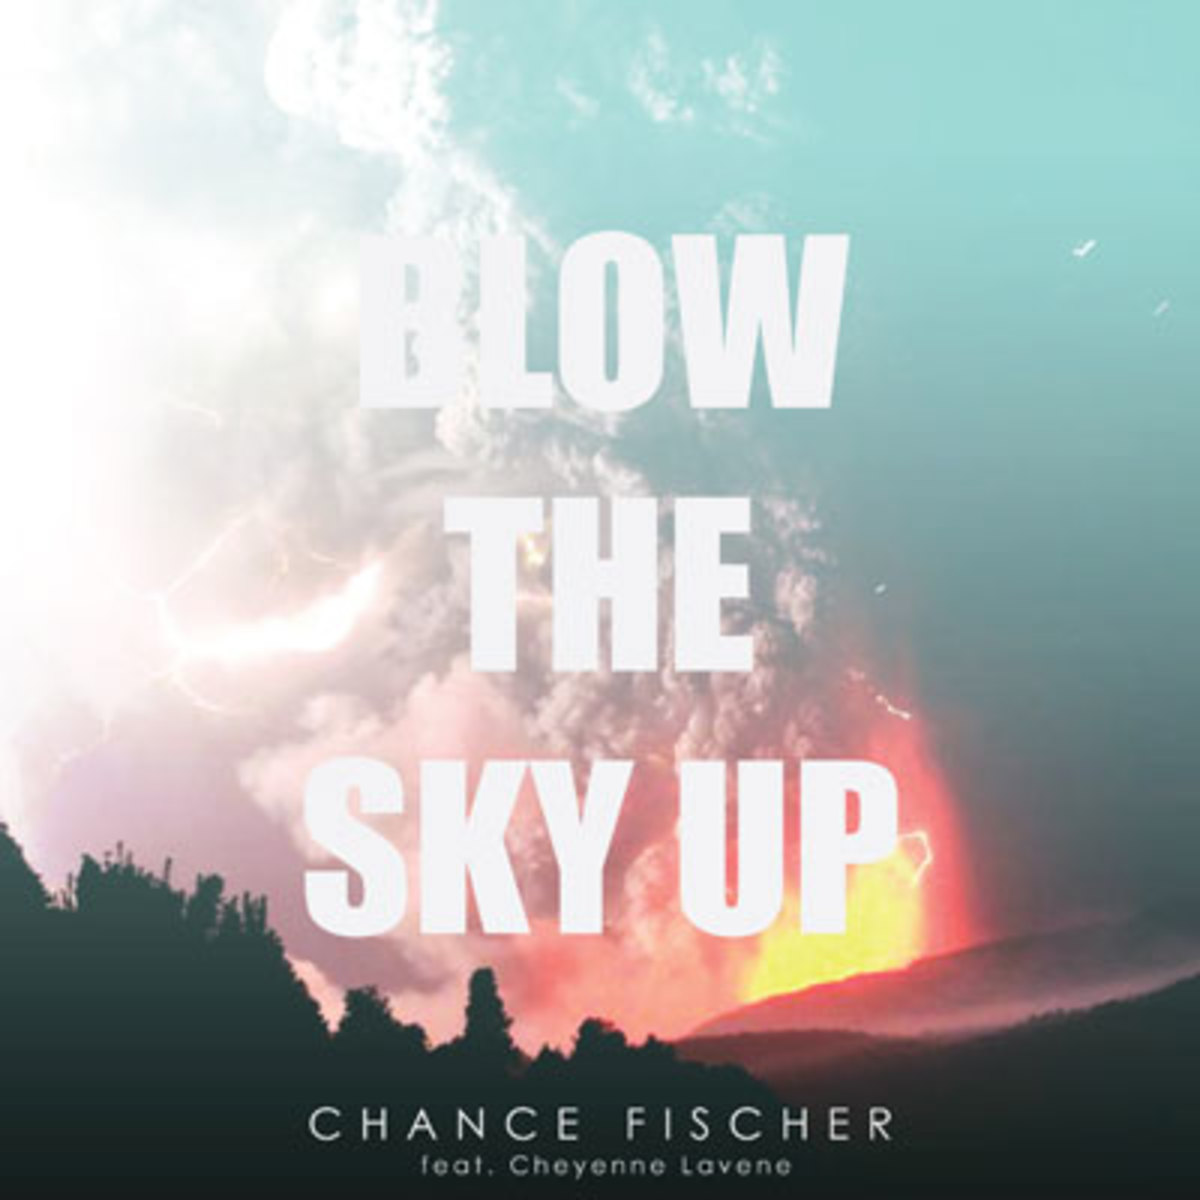 chancefischer-blowup.jpg